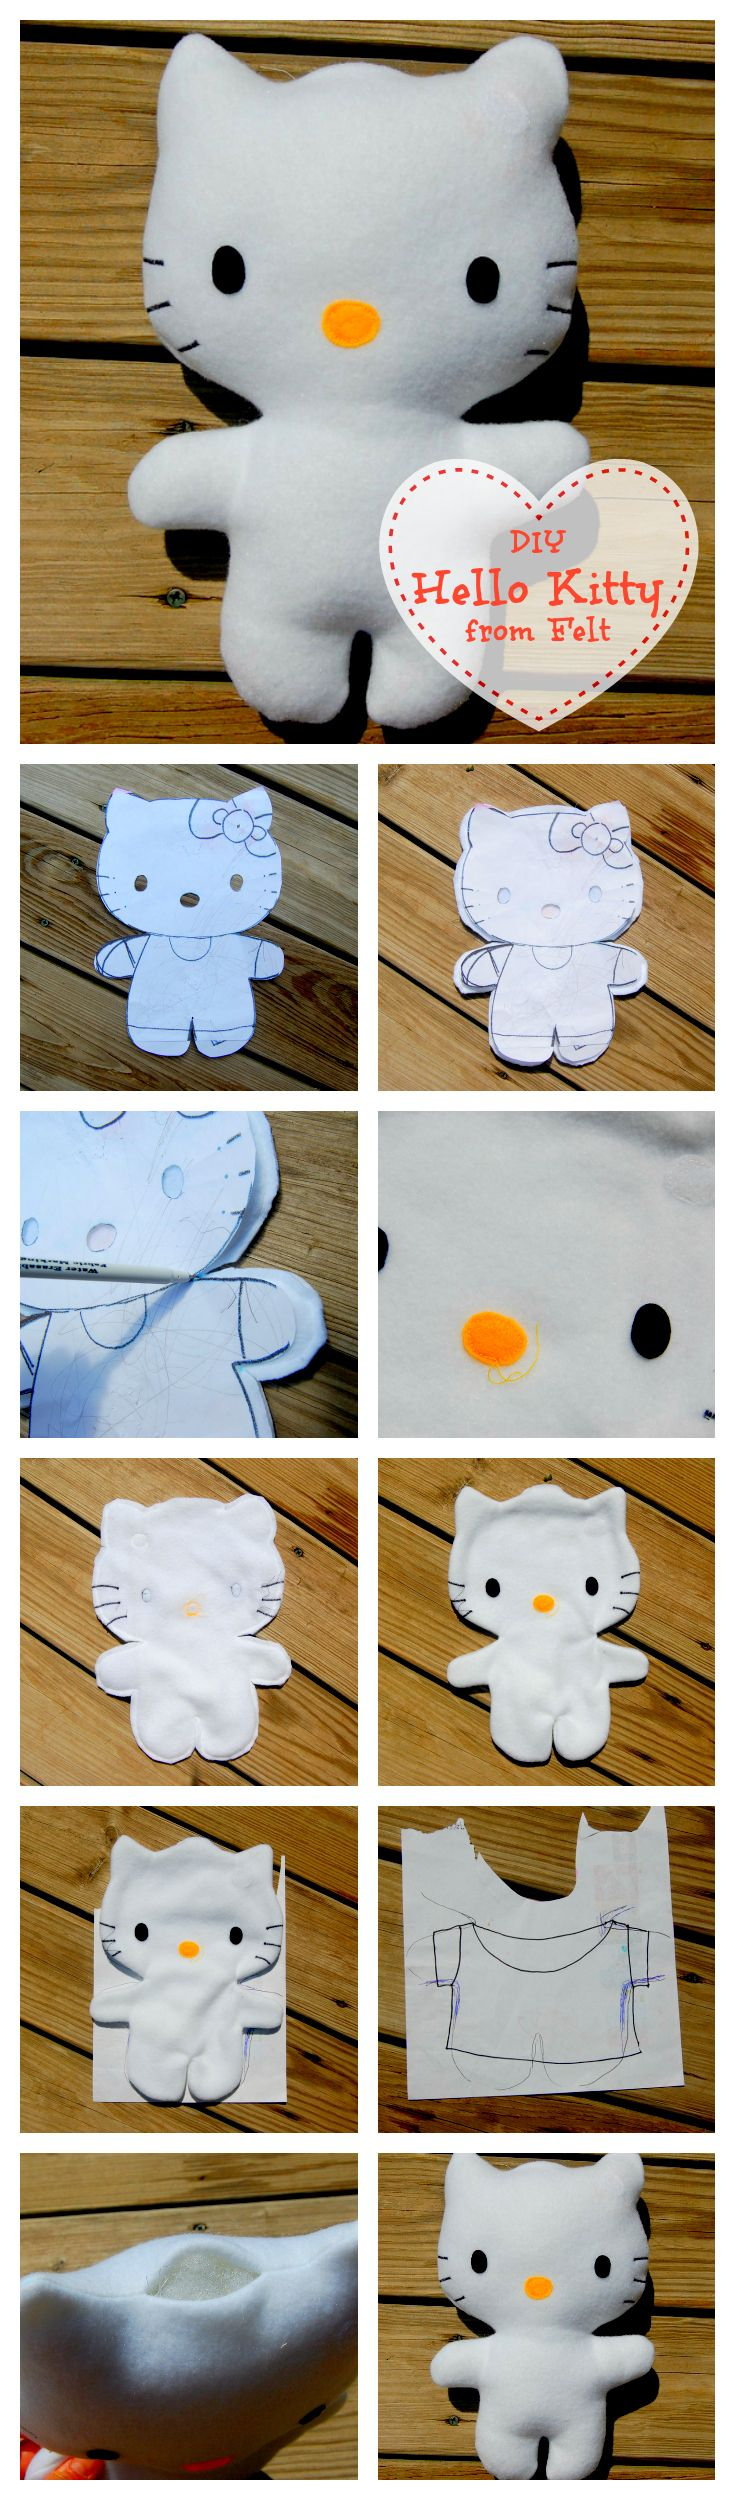 DIY Hello Kitty from Felt